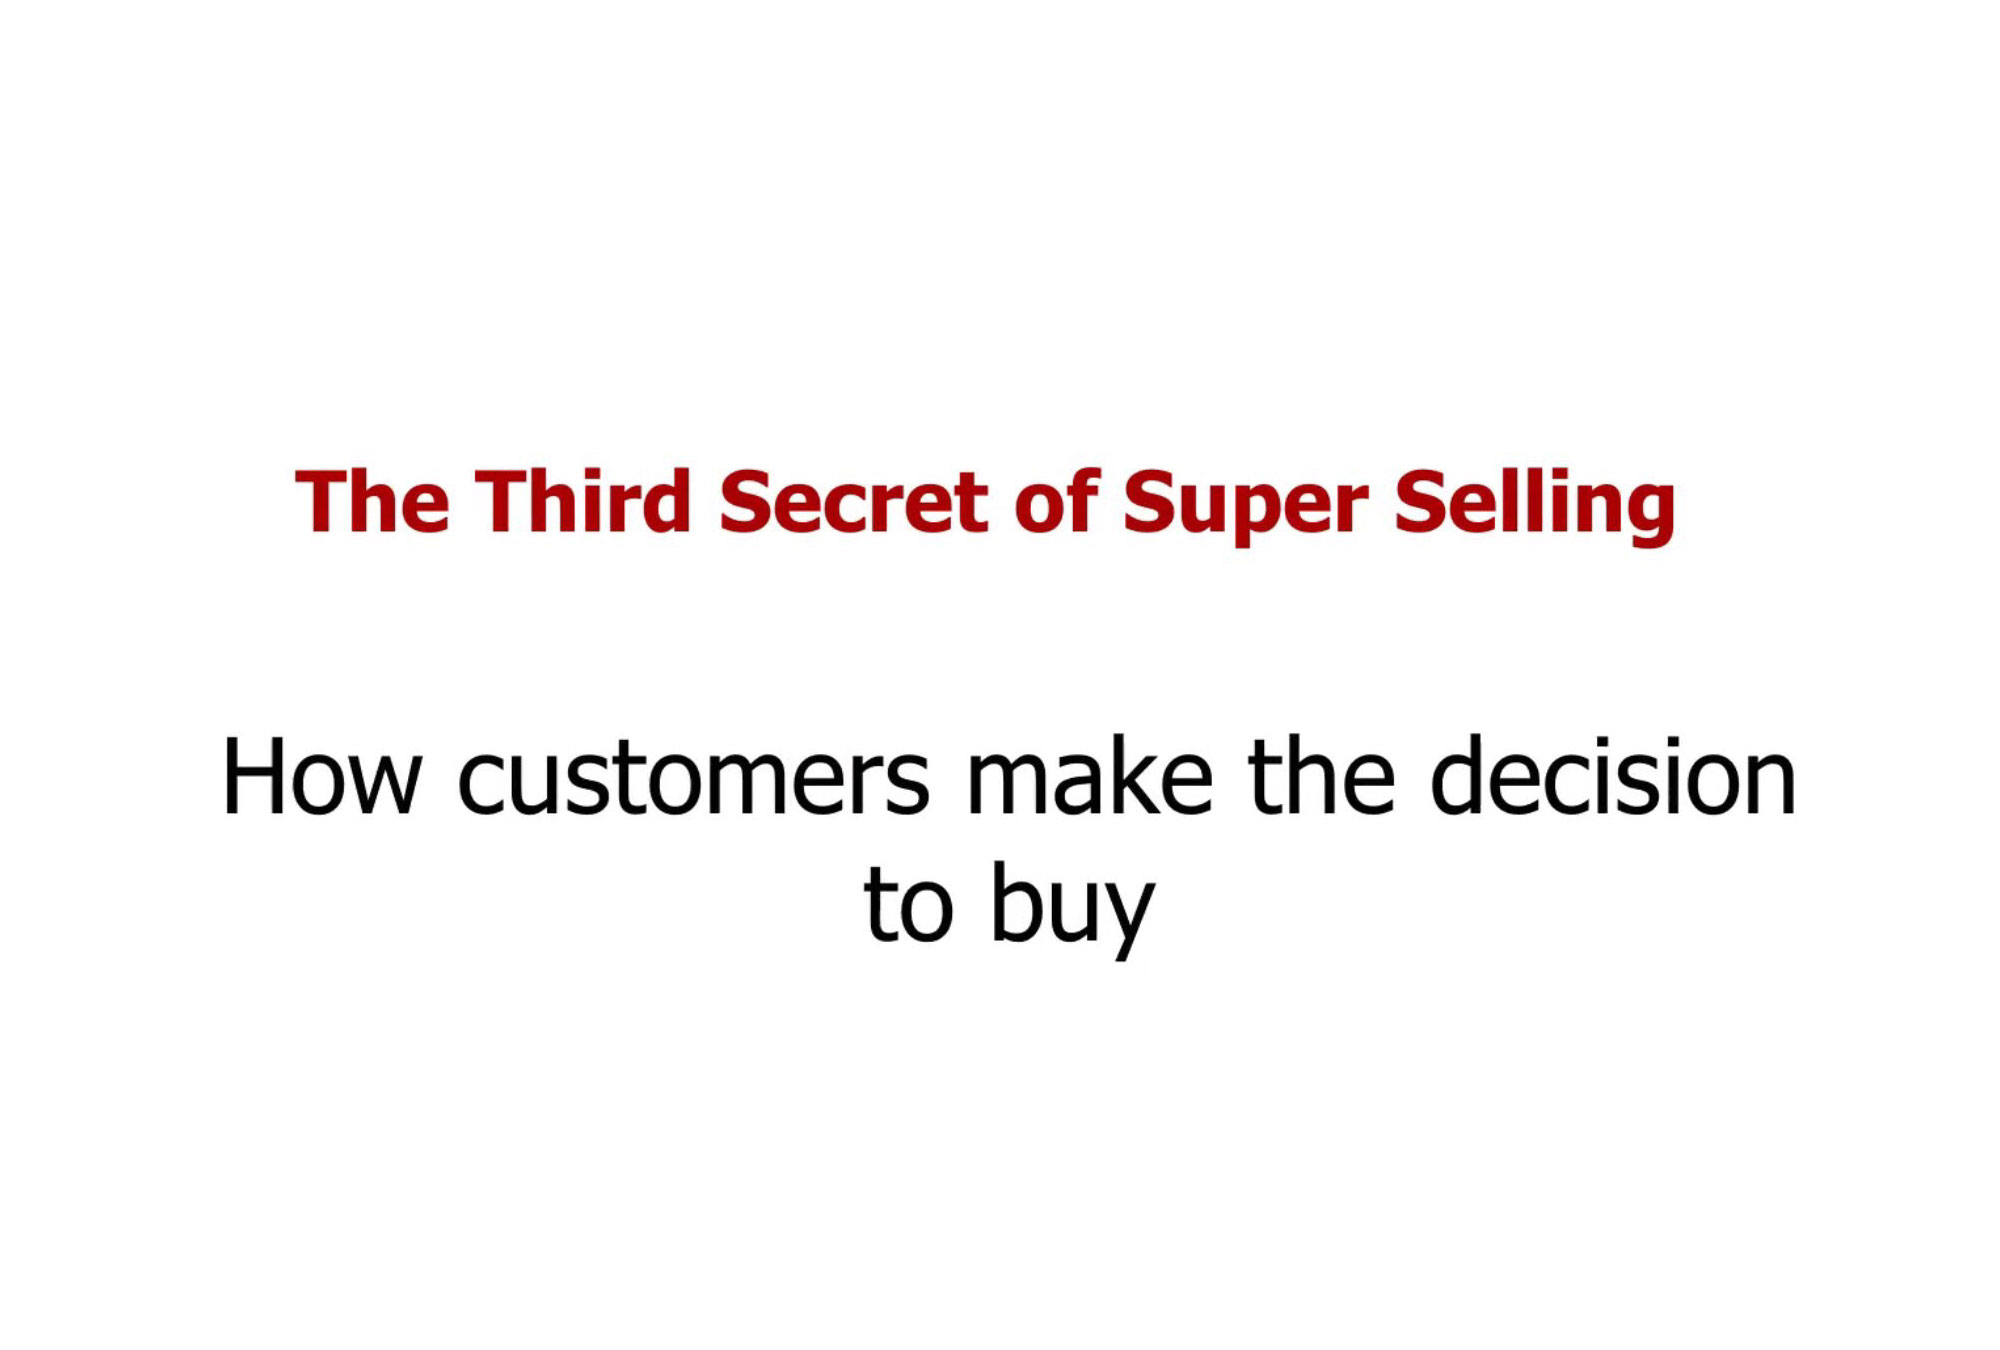 How customers make the decision to buy